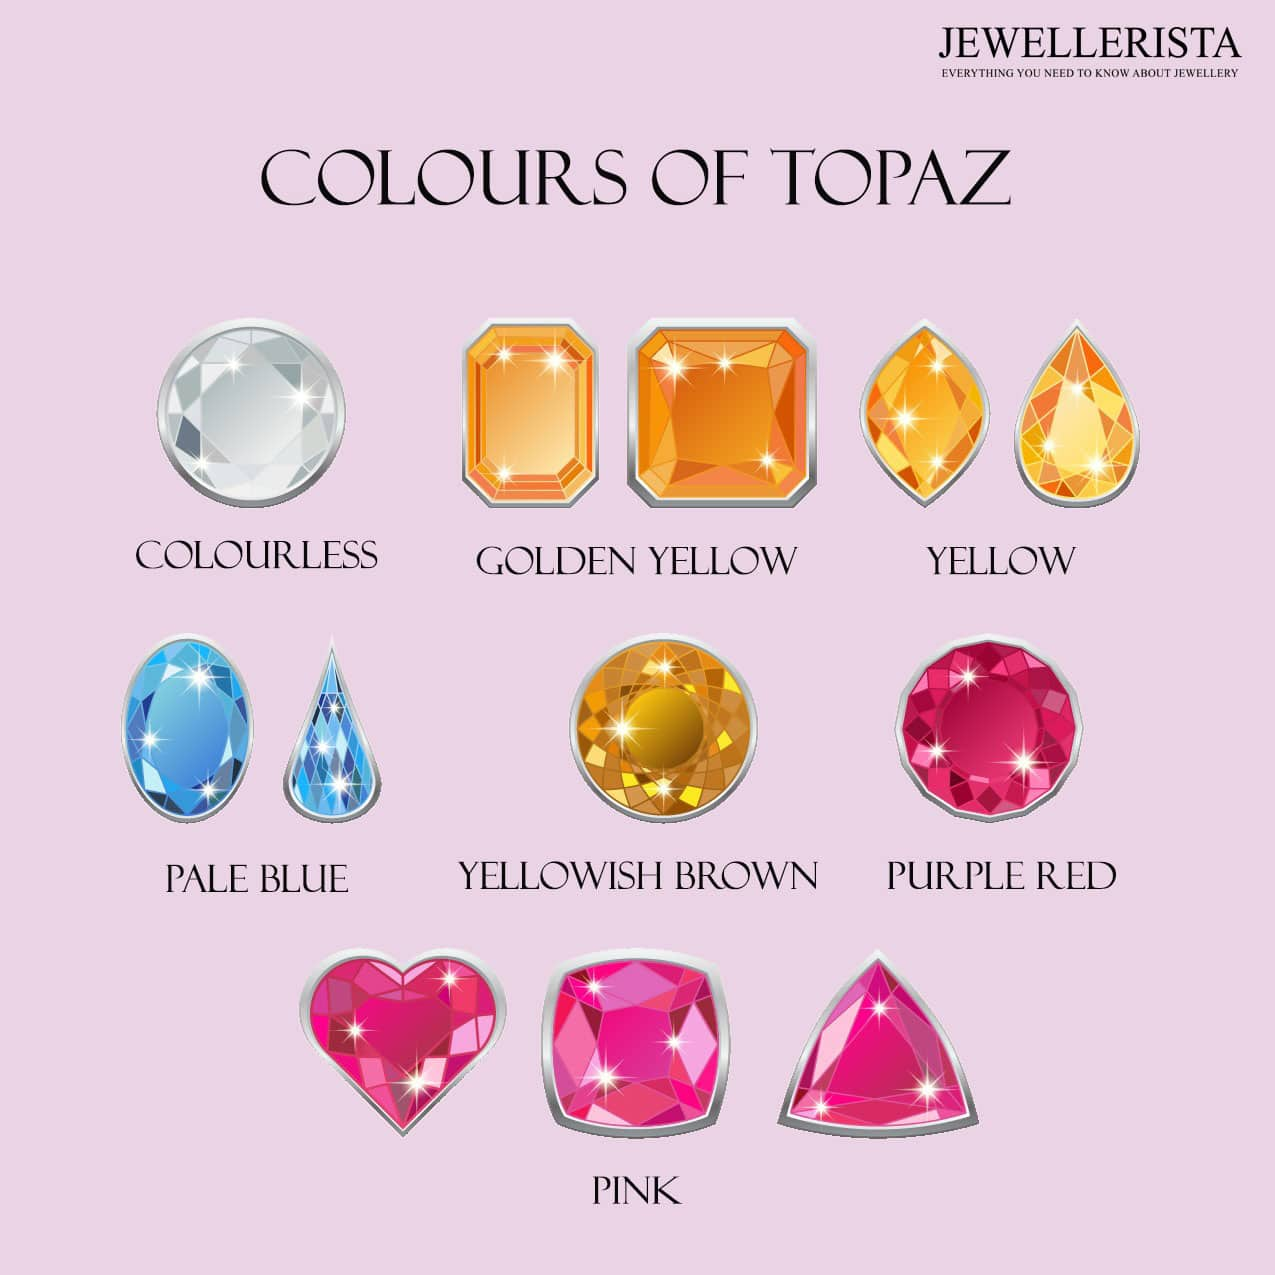 Scorpio Birthstone: The Myth & Meaning Behind the Topaz